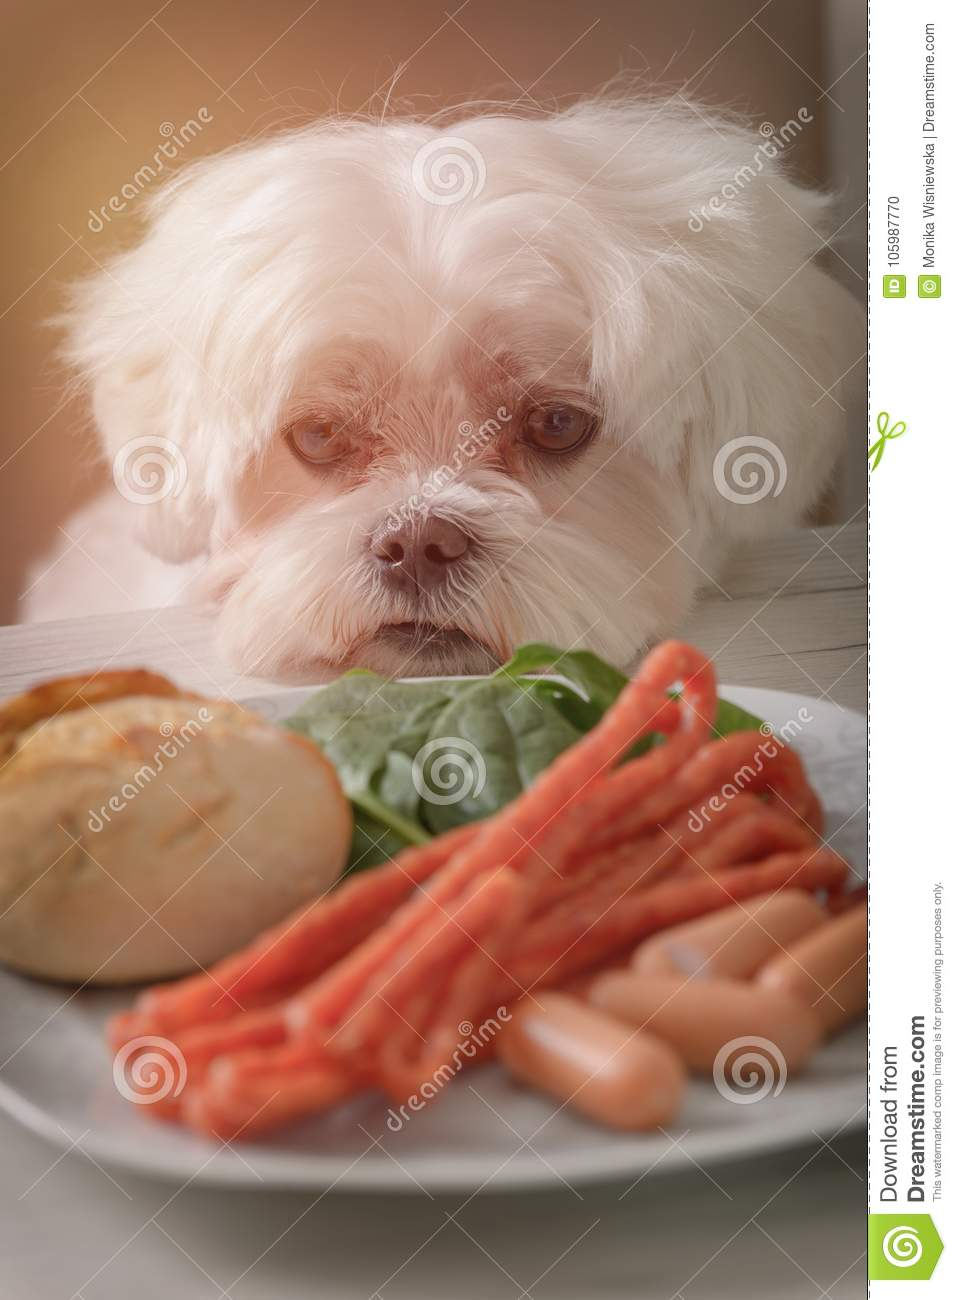 Cute dog asking for food